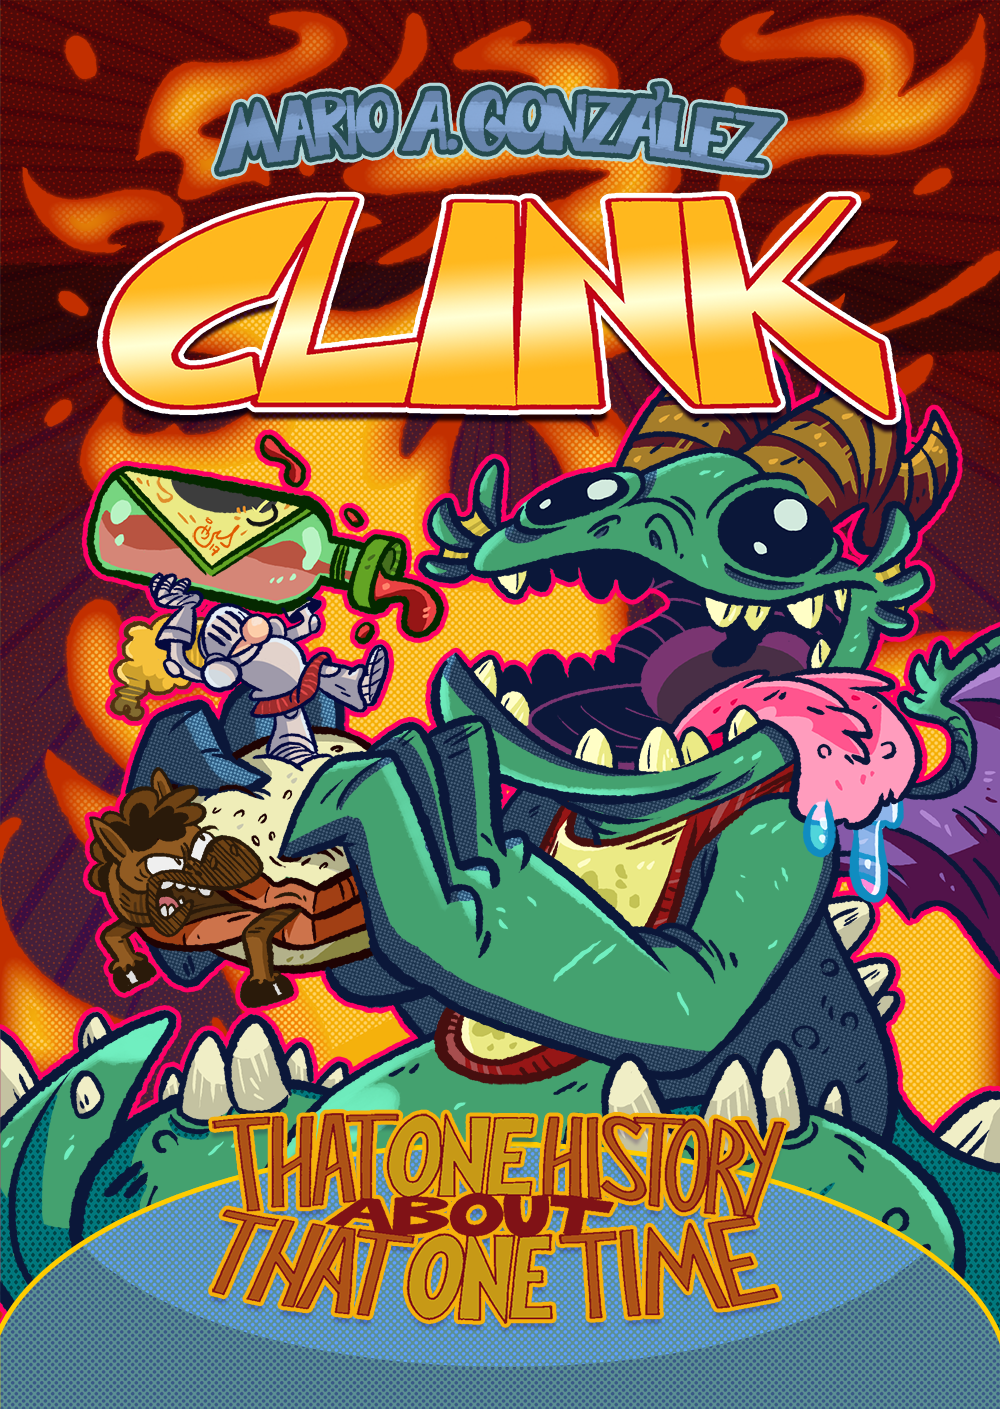 CLINK - That One History about That One Time